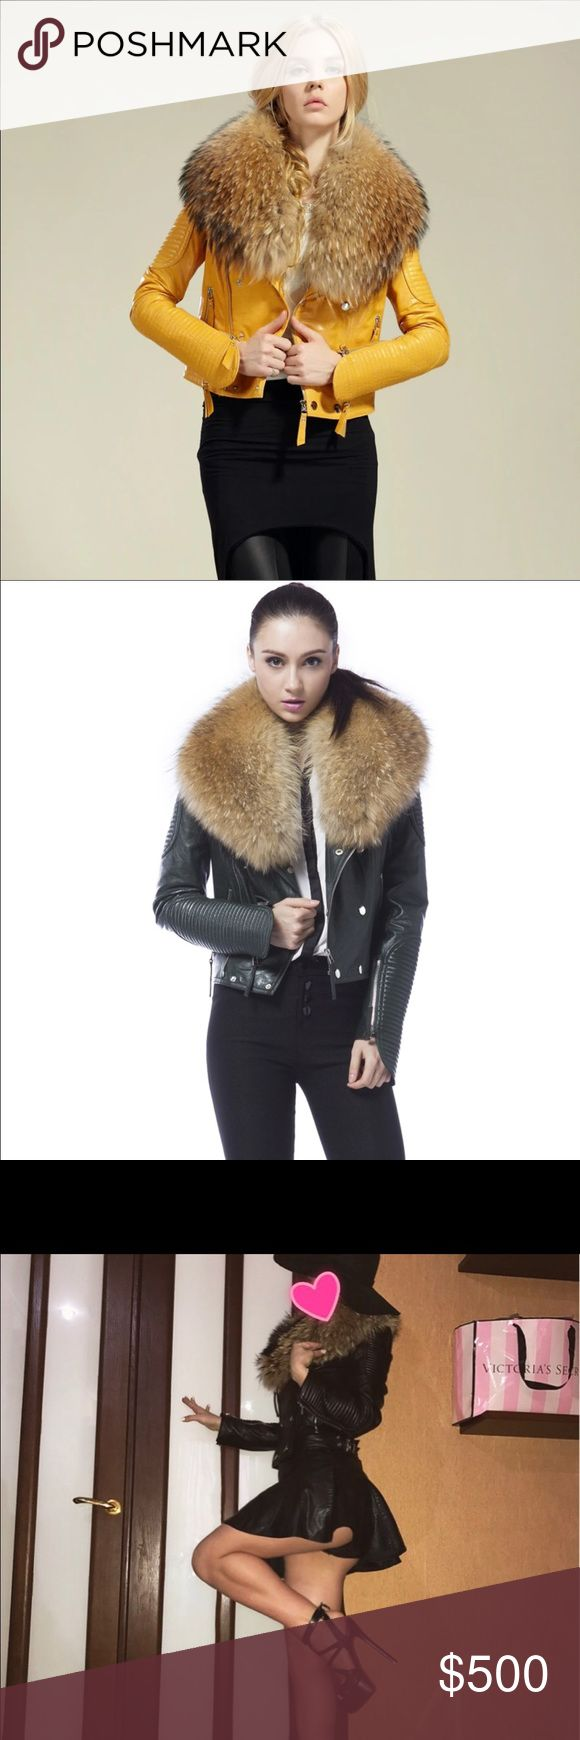 Leather jacket with fur RED, ROSE PINK, BLUE, BLACK, YELLOW, GREEN Jackets & Coats